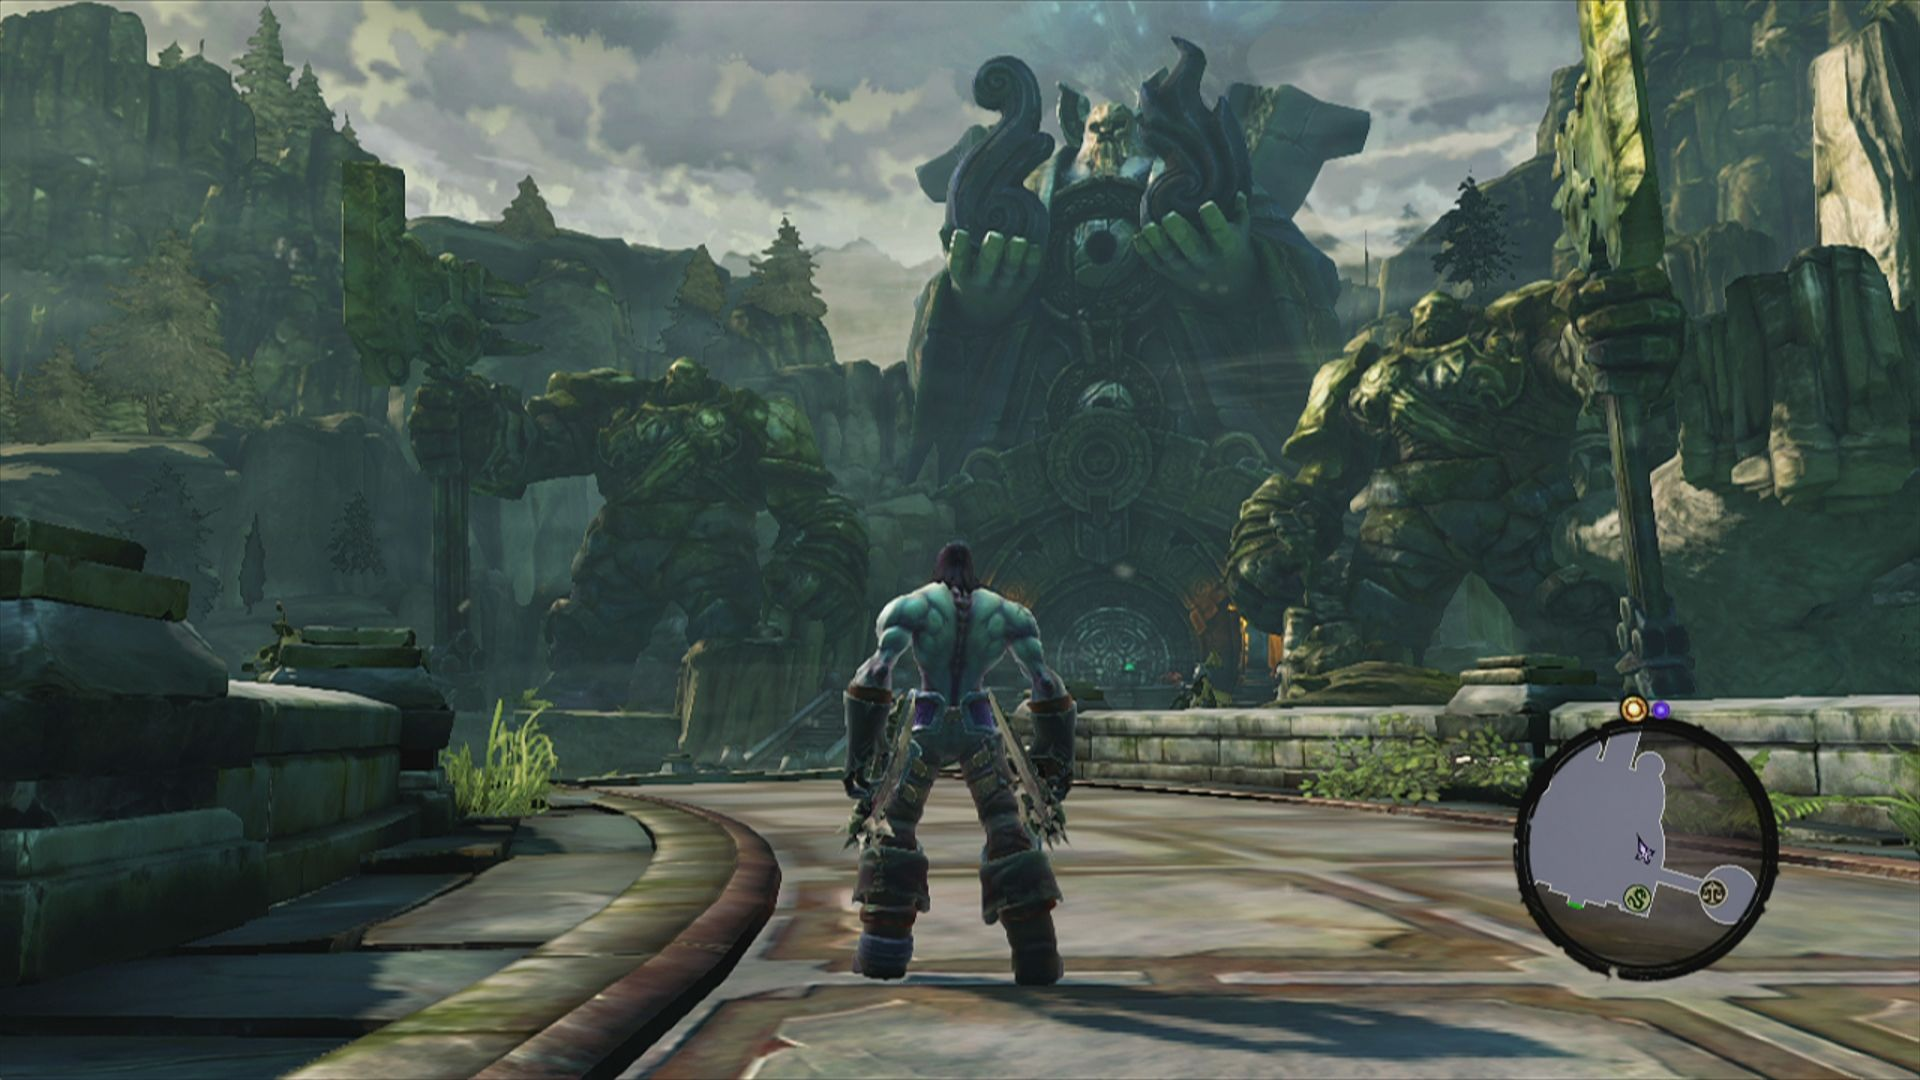 Darksiders II Xbox 360 Looks like dwarven architecture .... too bad there are no dwarves in this game